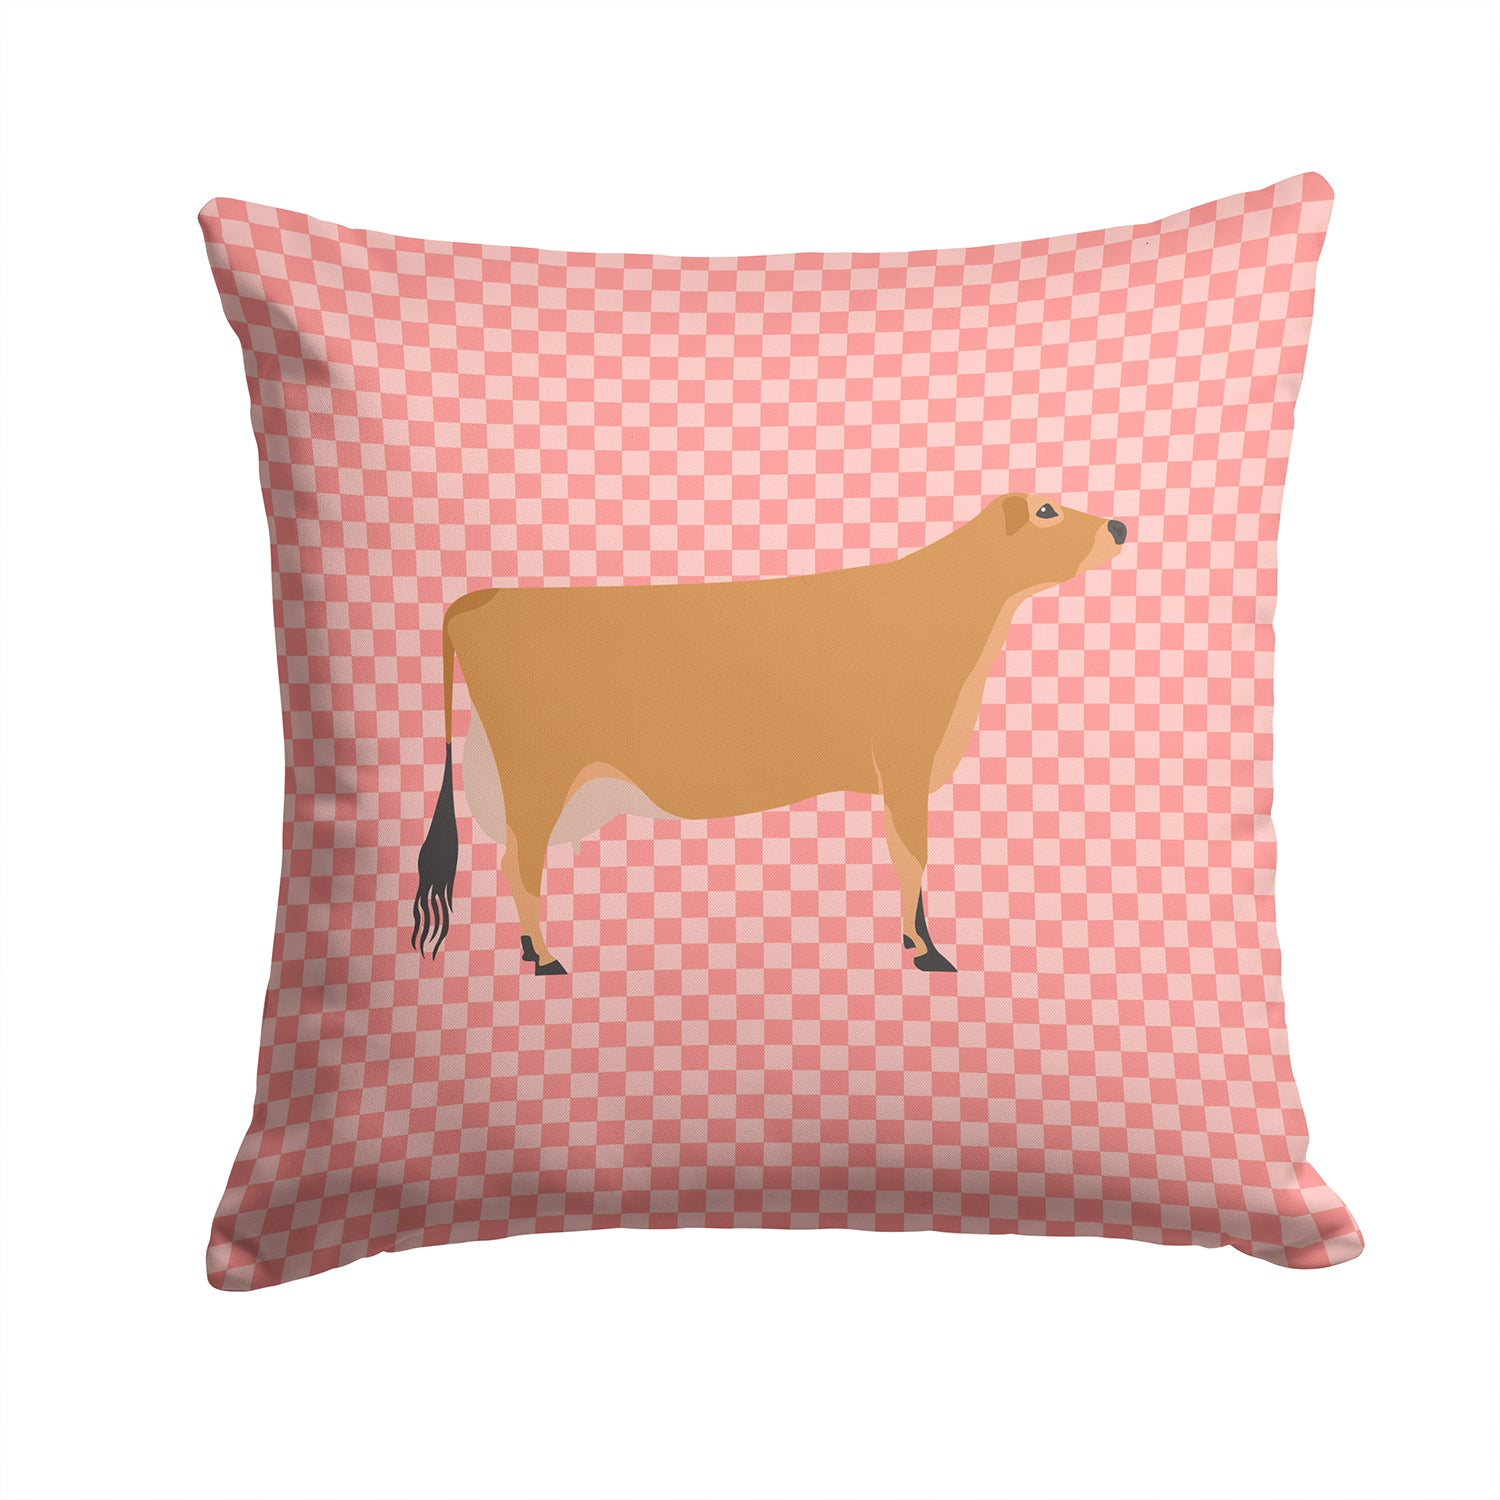 Jersey Cow Pink Check Fabric Decorative Pillow BB7829PW1414 by Caroline's Treasures